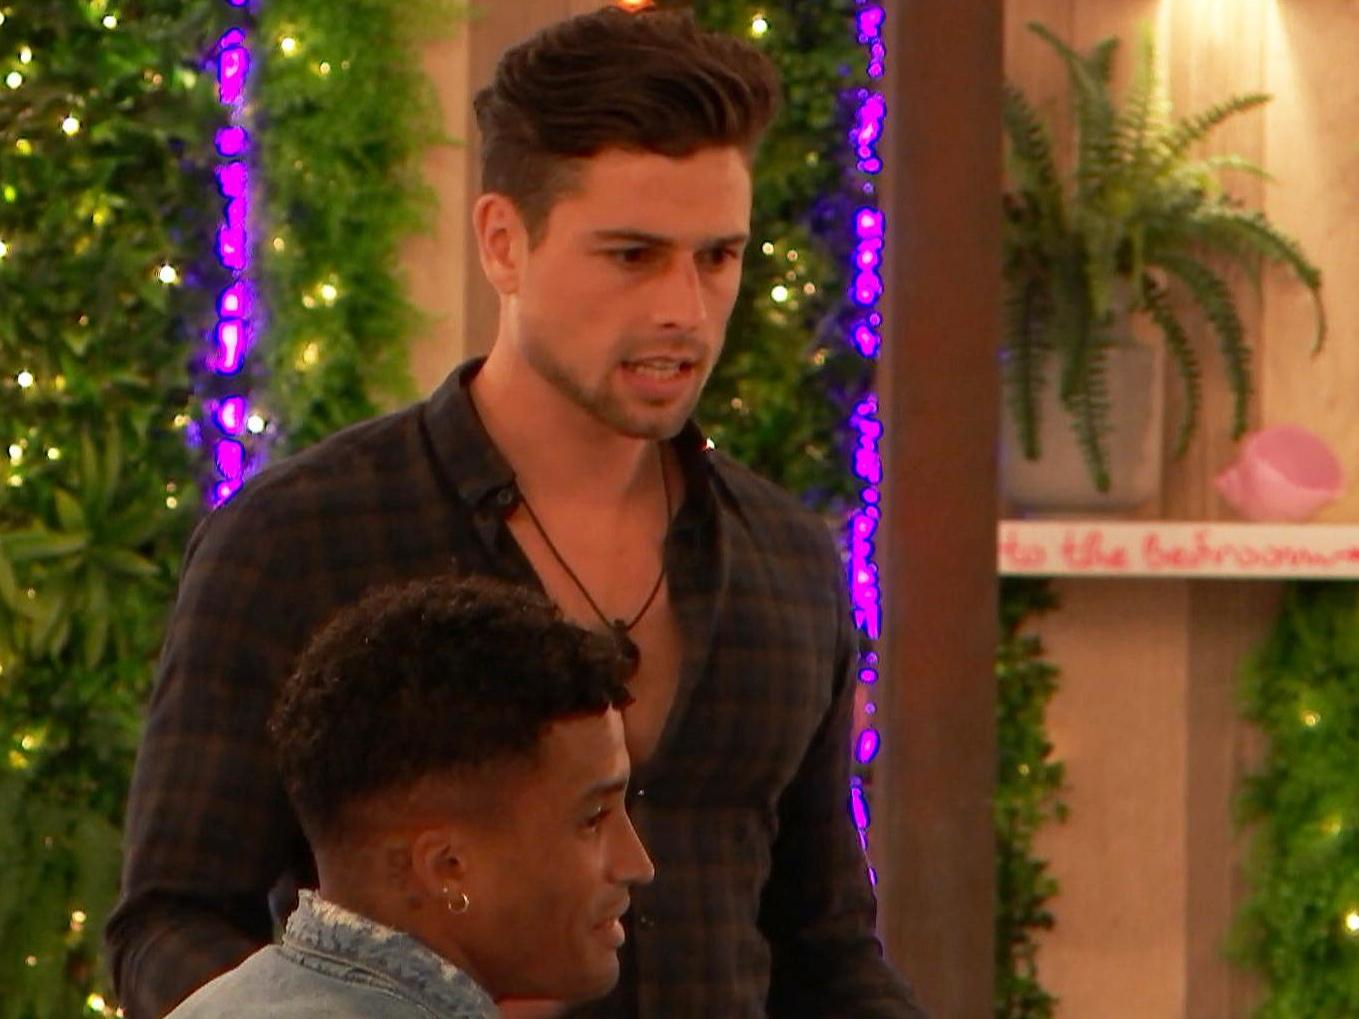 Love Island viewers complain show is 'full of toxic masculinity'